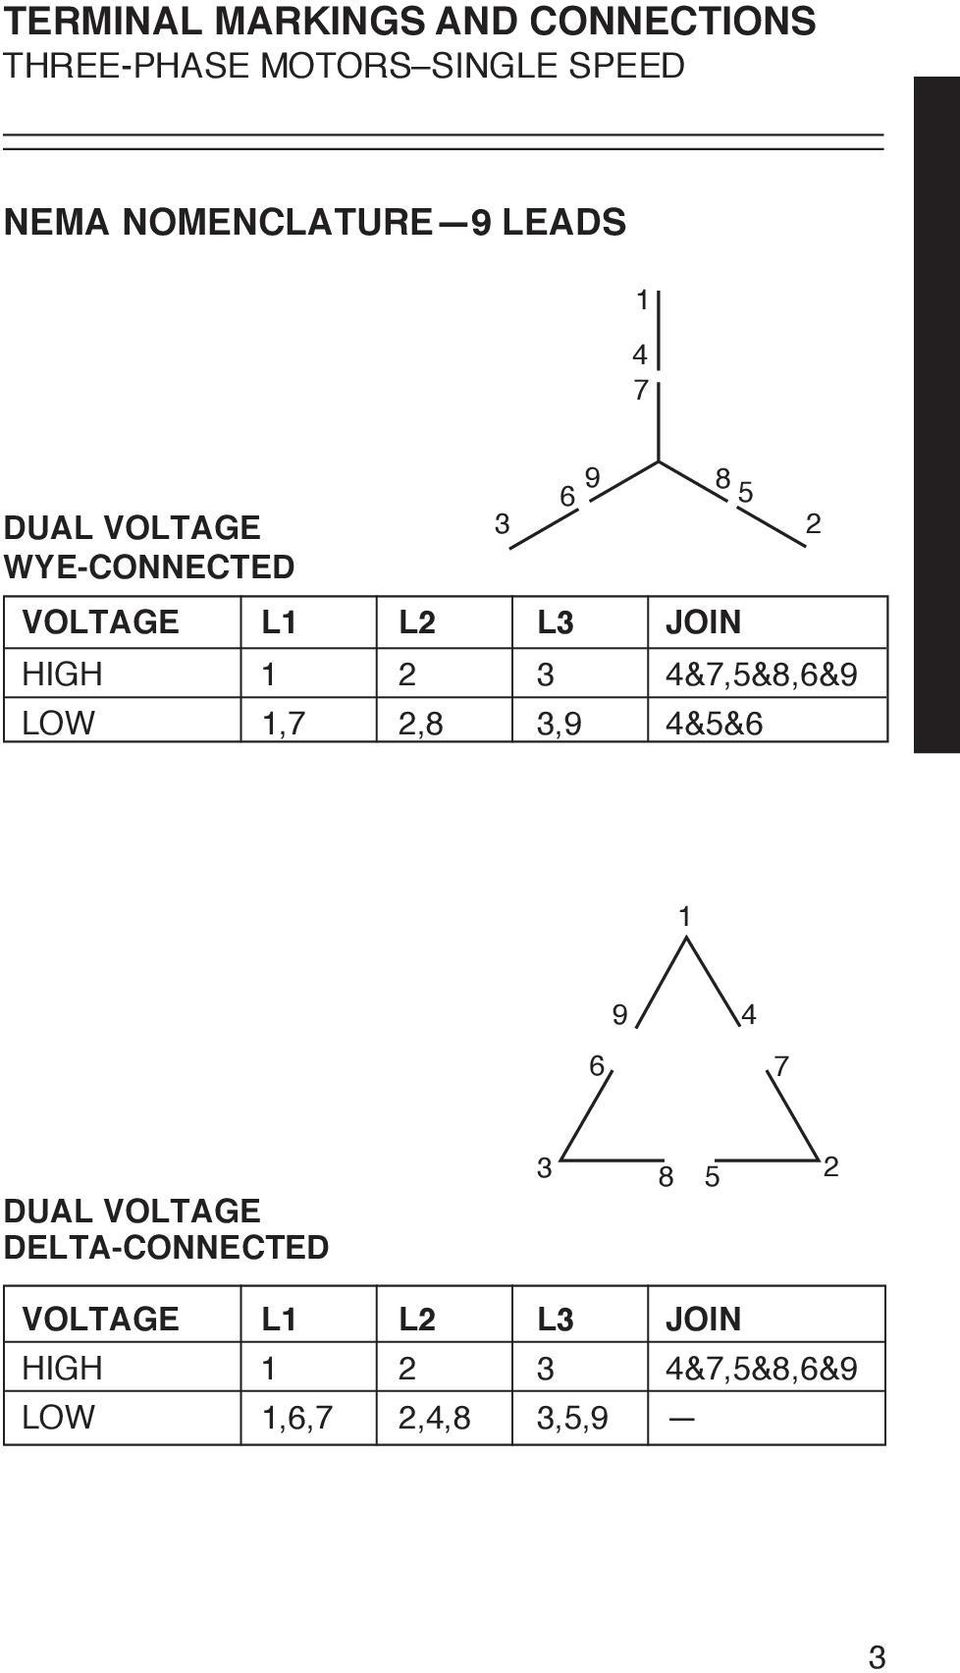 hight resolution of l l3 join high 3 7 5 8 6 9 low 7 8 3 4 terminal markings and connections three phase motors single speed nema nomenclature leads 7 dual voltage